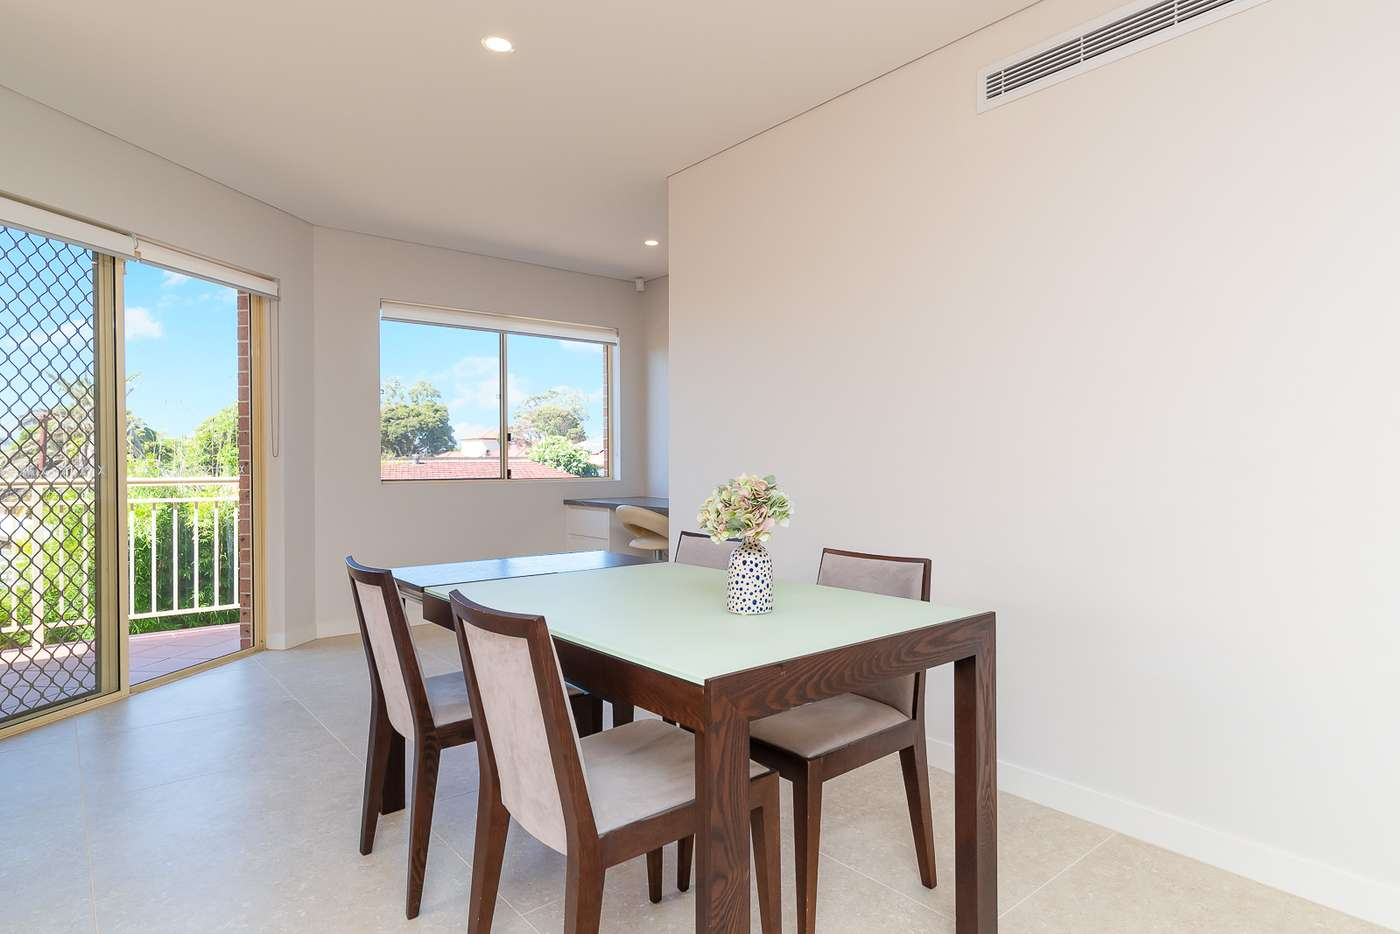 Fifth view of Homely house listing, 82 Moreton Street, Lakemba NSW 2195